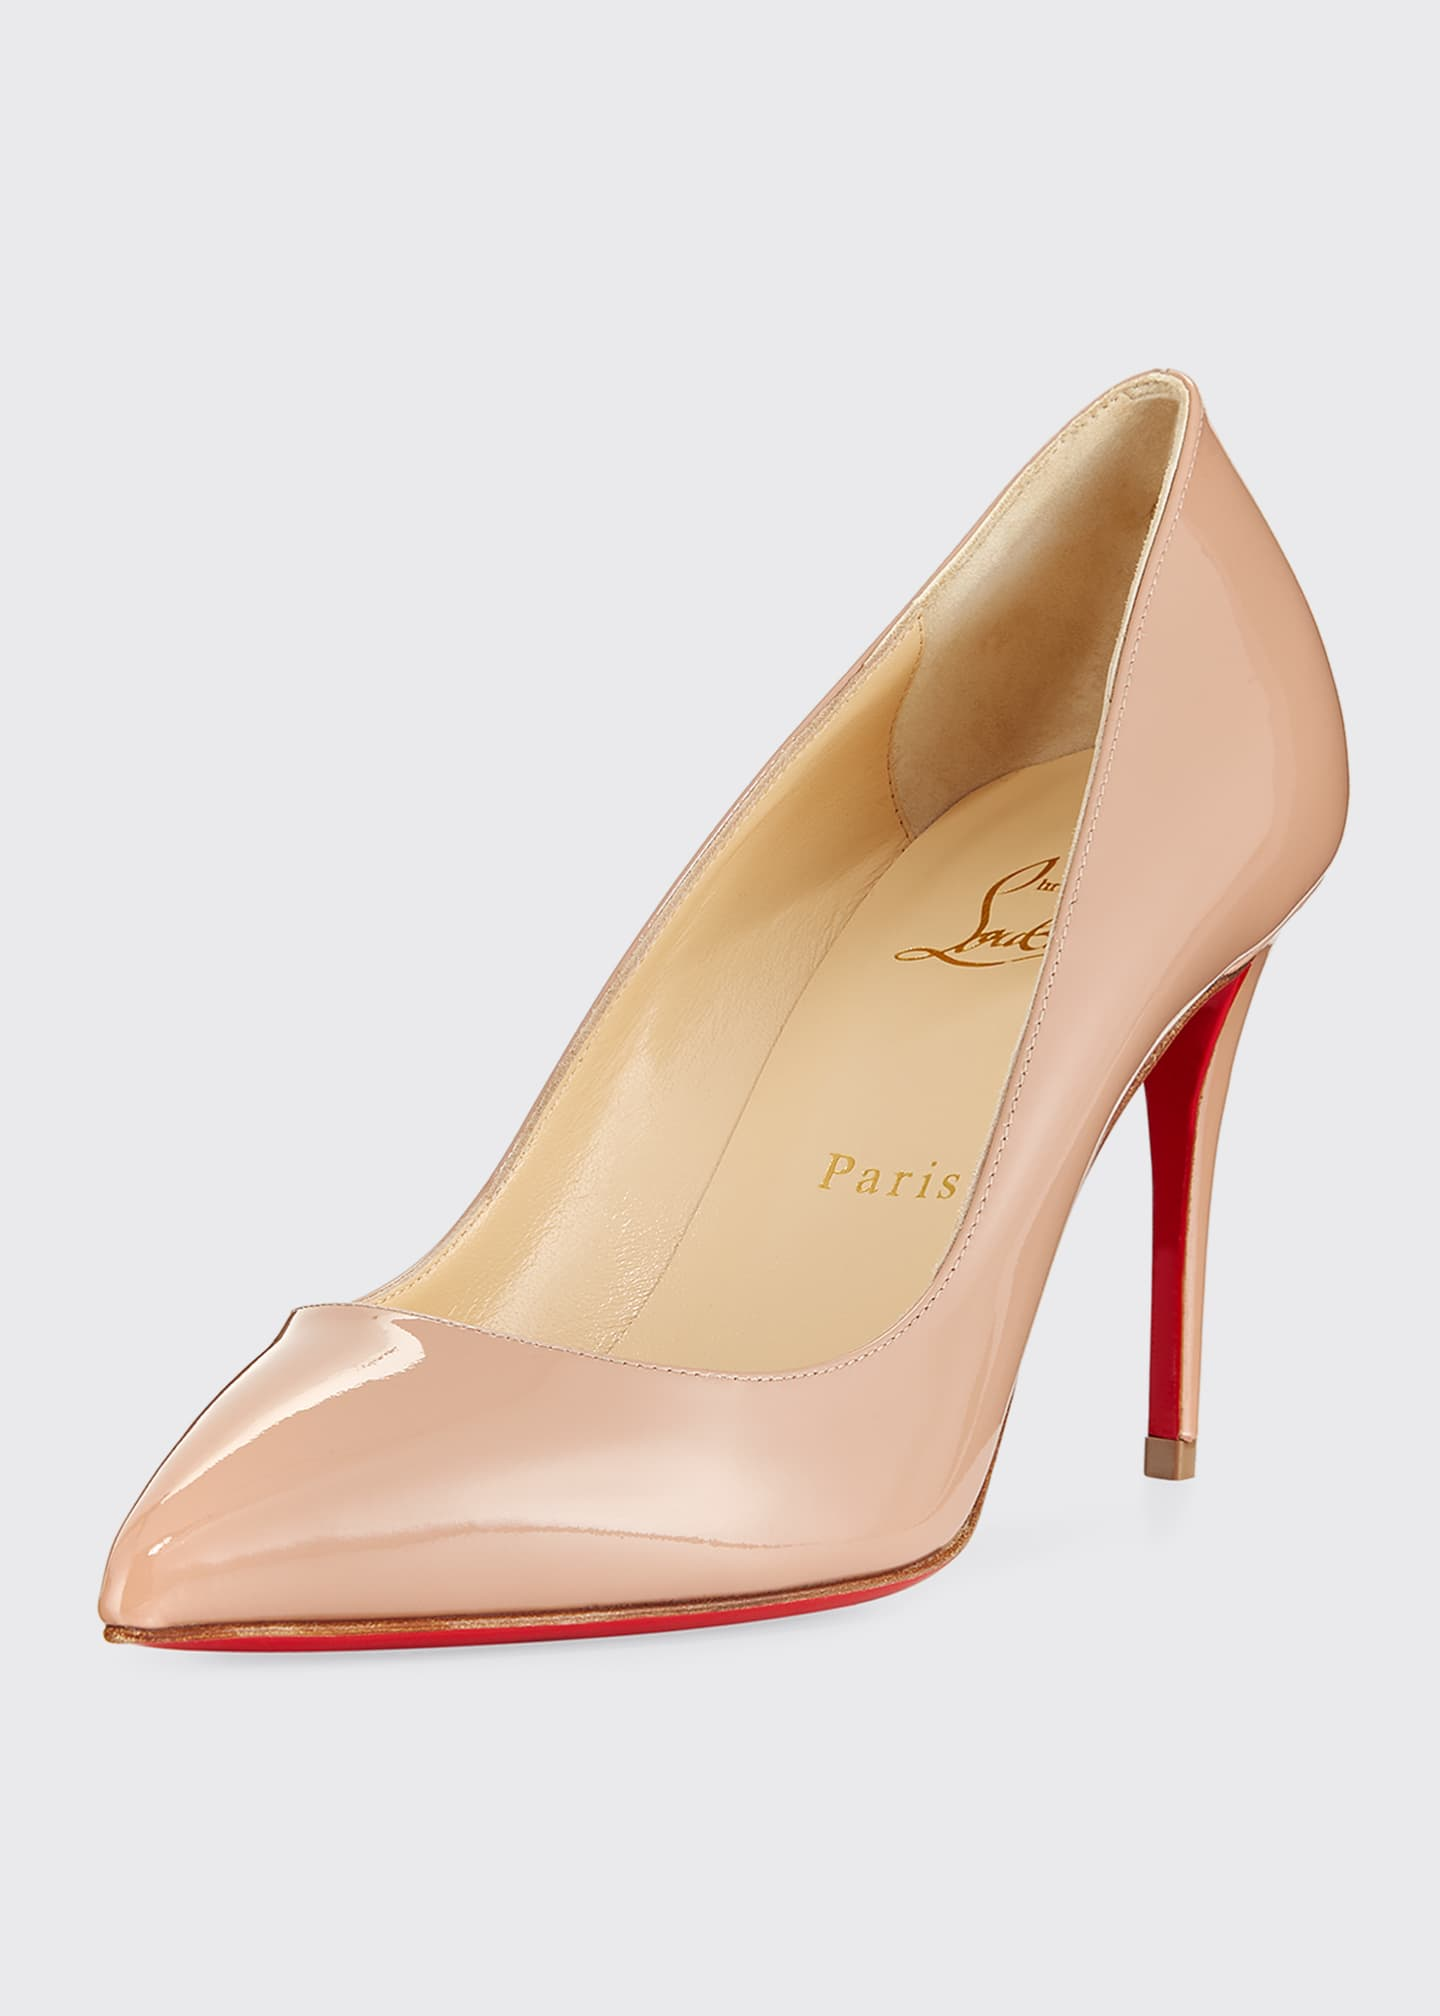 Image 1 of 3: Pigalle Follies 85mm Patent Red Sole Pumps